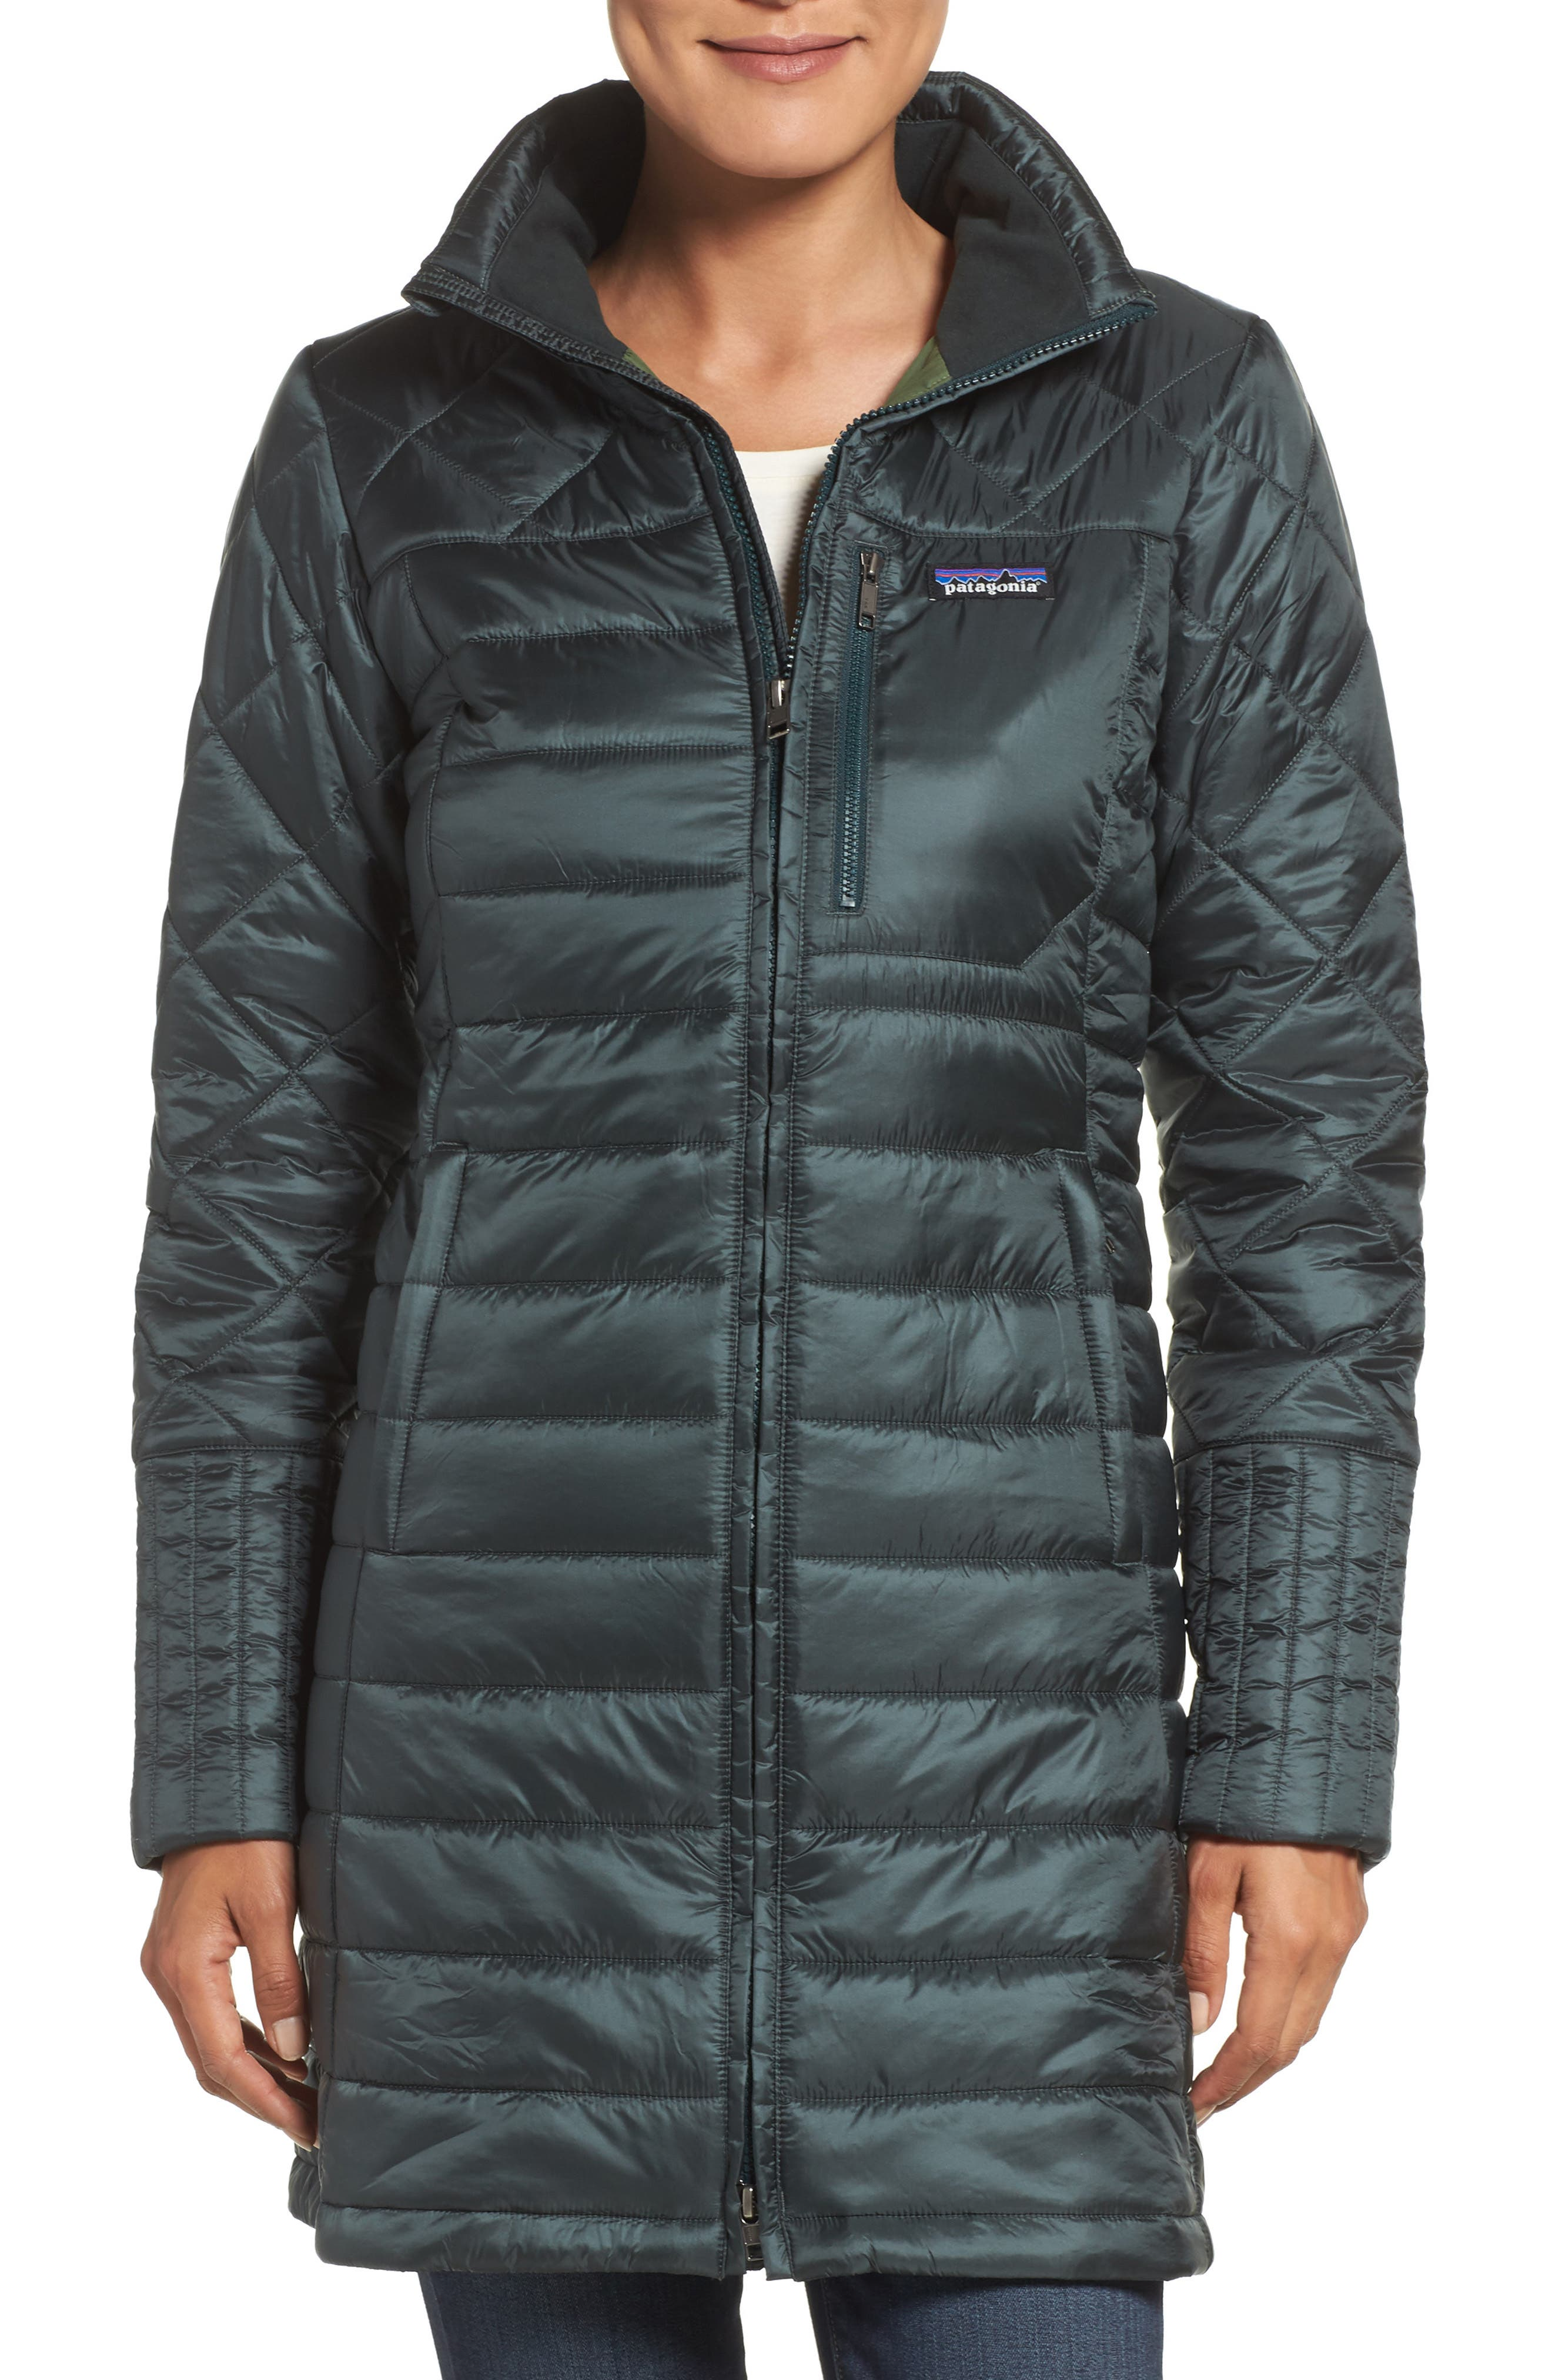 Alternate Image 1 Selected - Patagonia 'Radalie' Water Repellent Parka